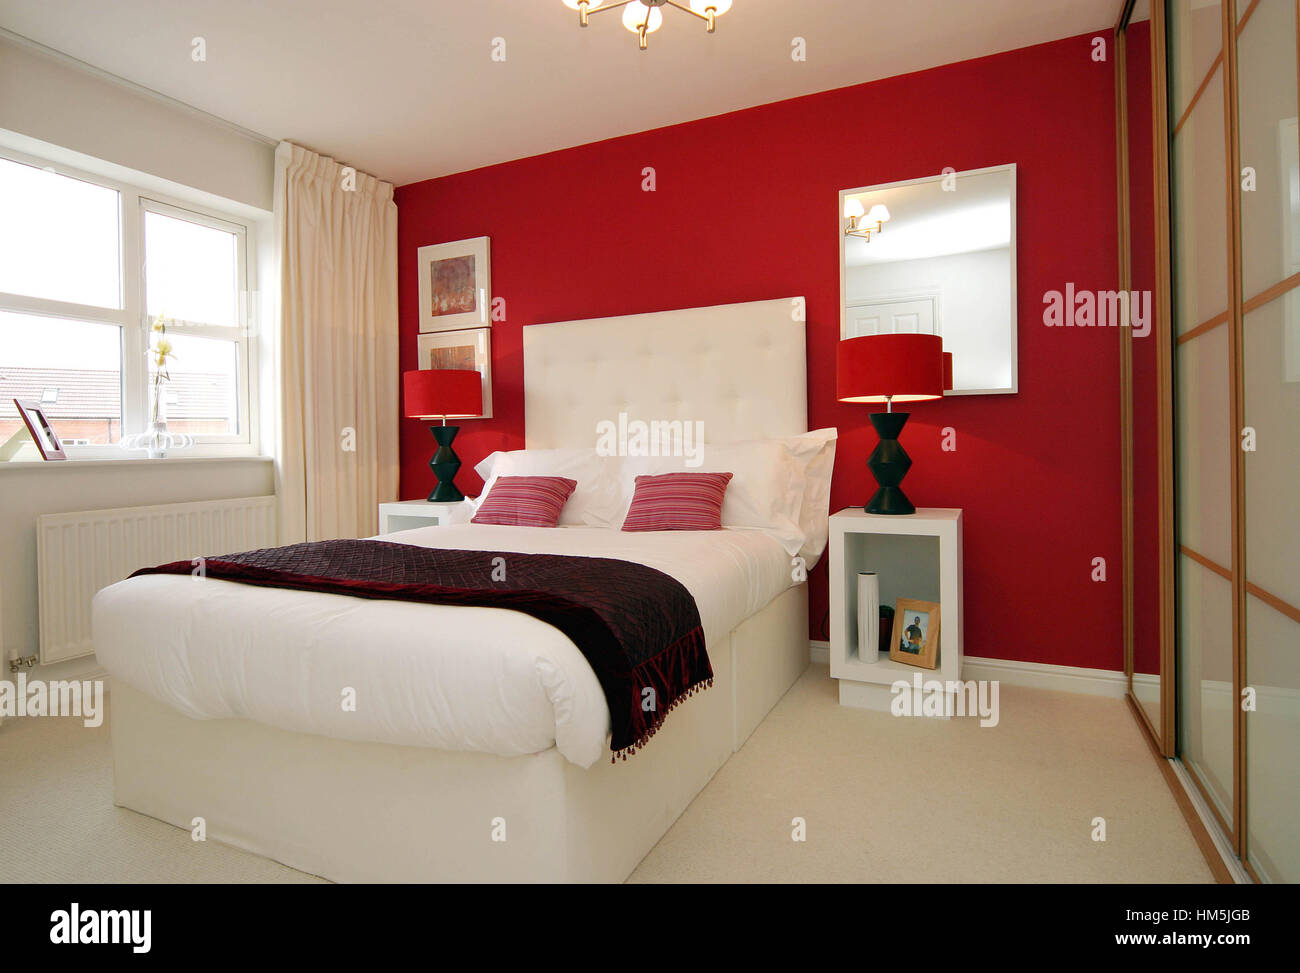 Modern Bedroom With Sliding Wardrobe Doors, Red Feature Wall, Modern Stock Photo: 132890027